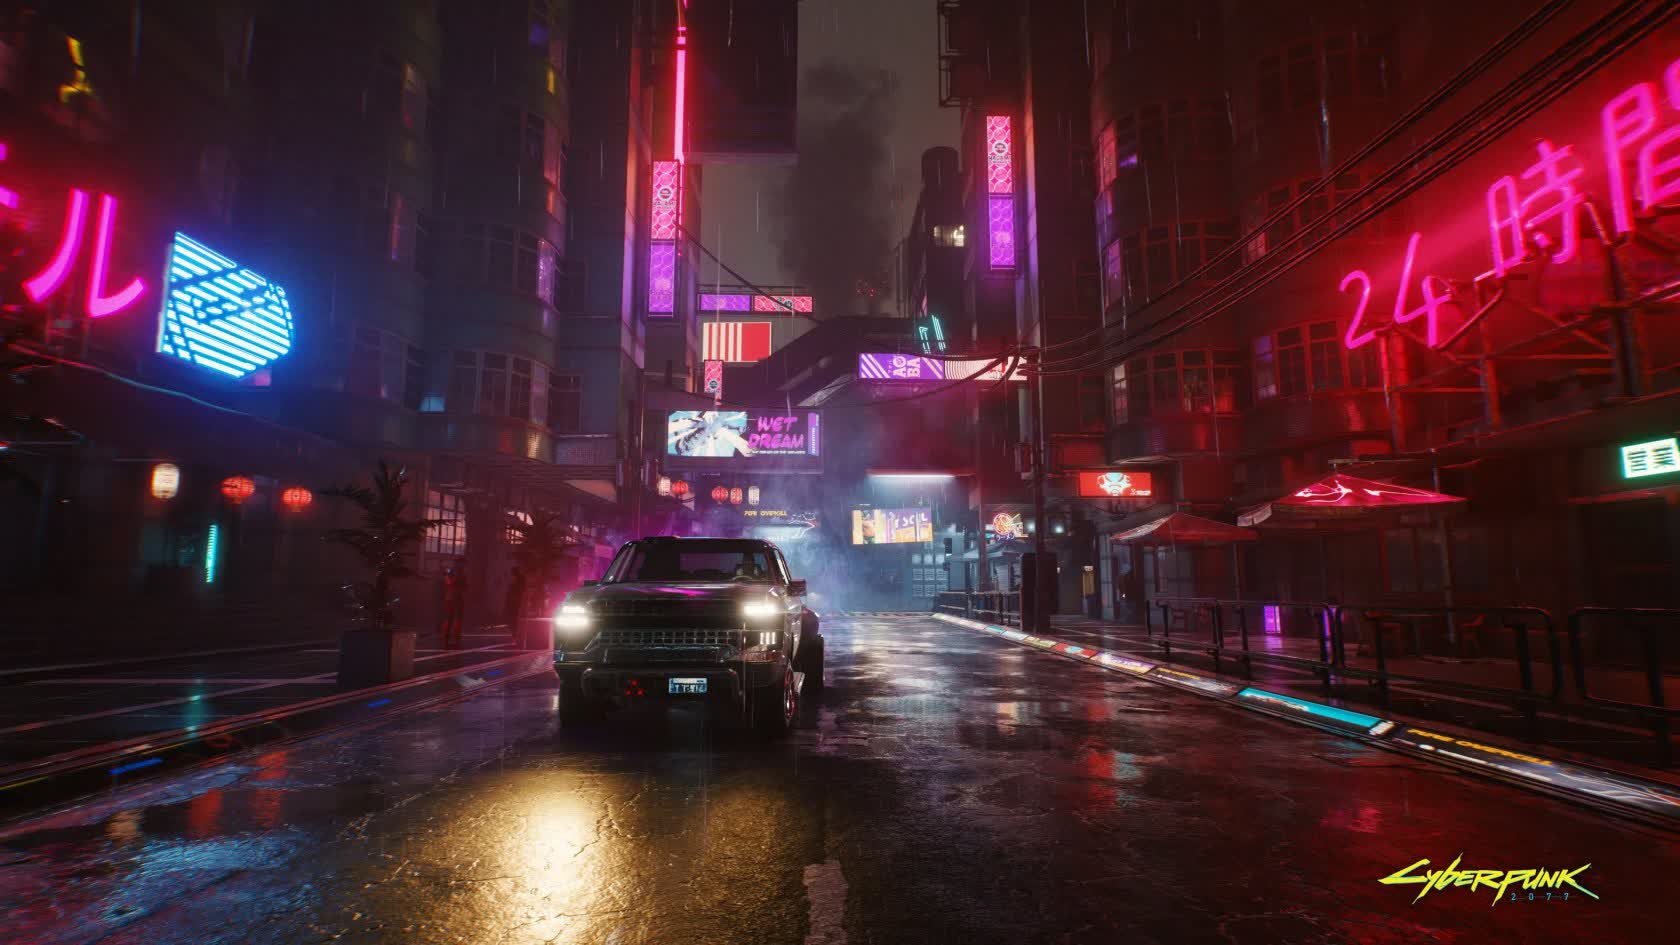 Cyberpunk 2077's online mode will have microtransactions